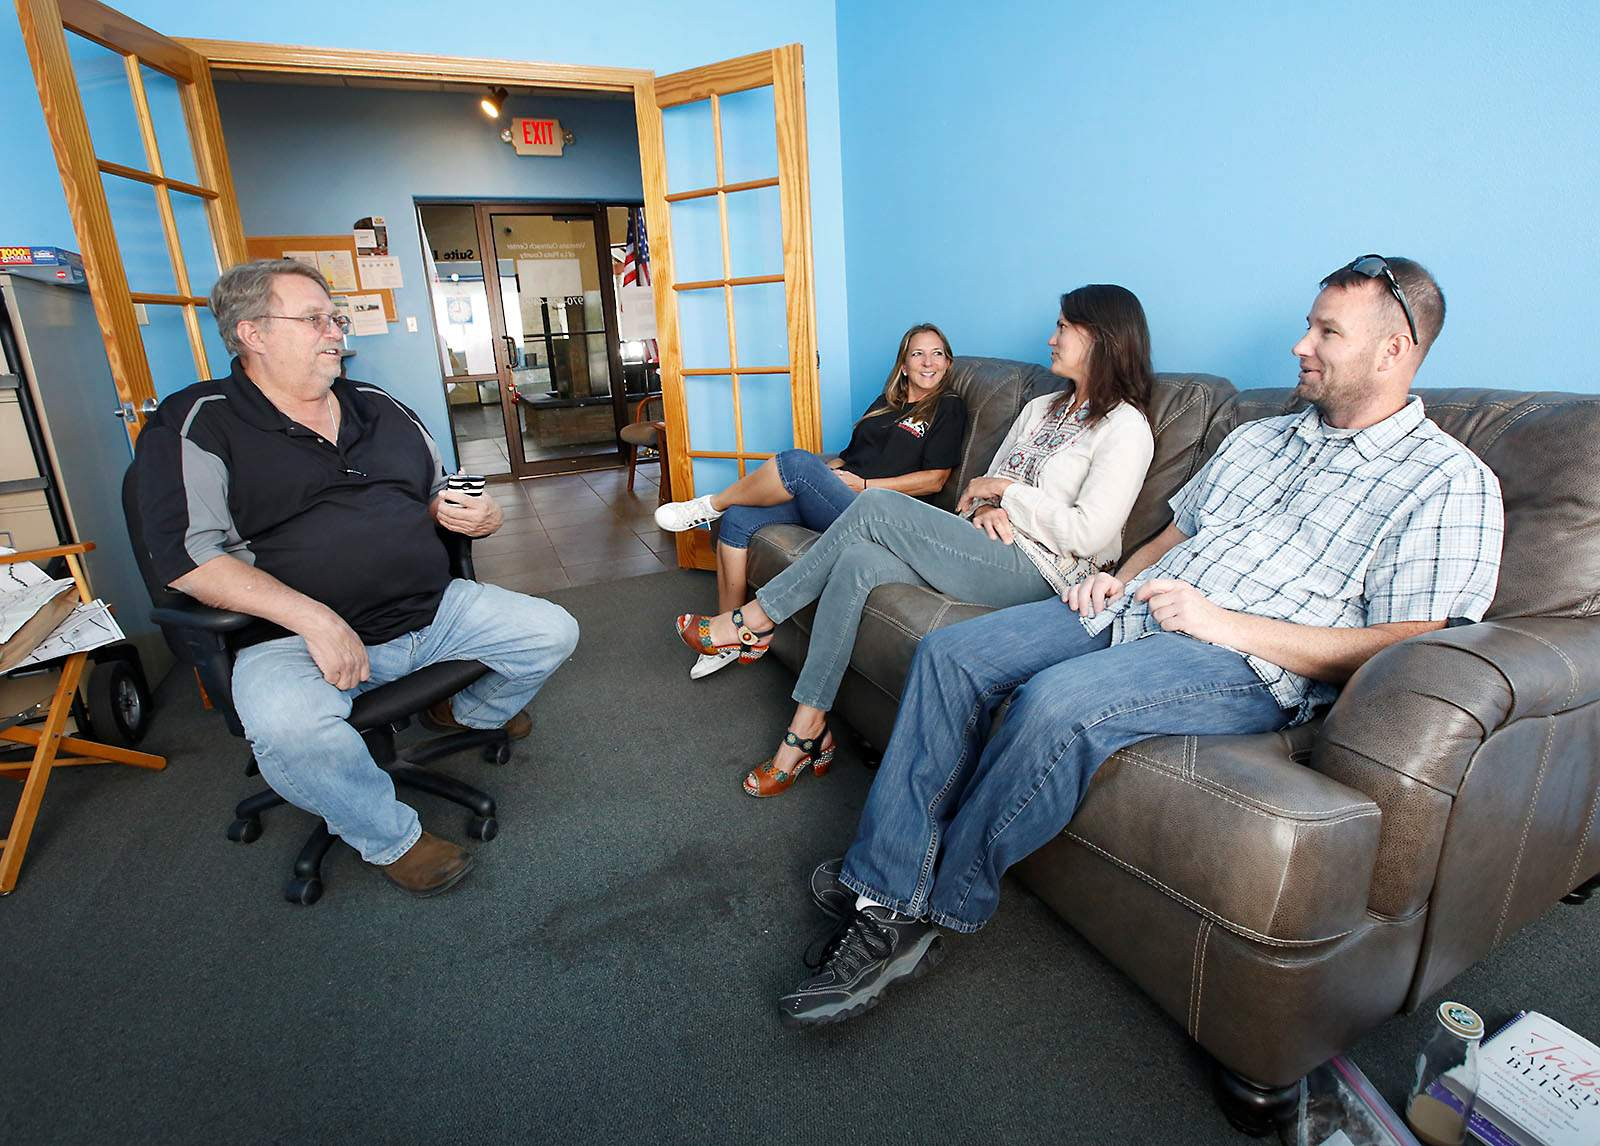 New center provides emergency aid, counseling to veterans